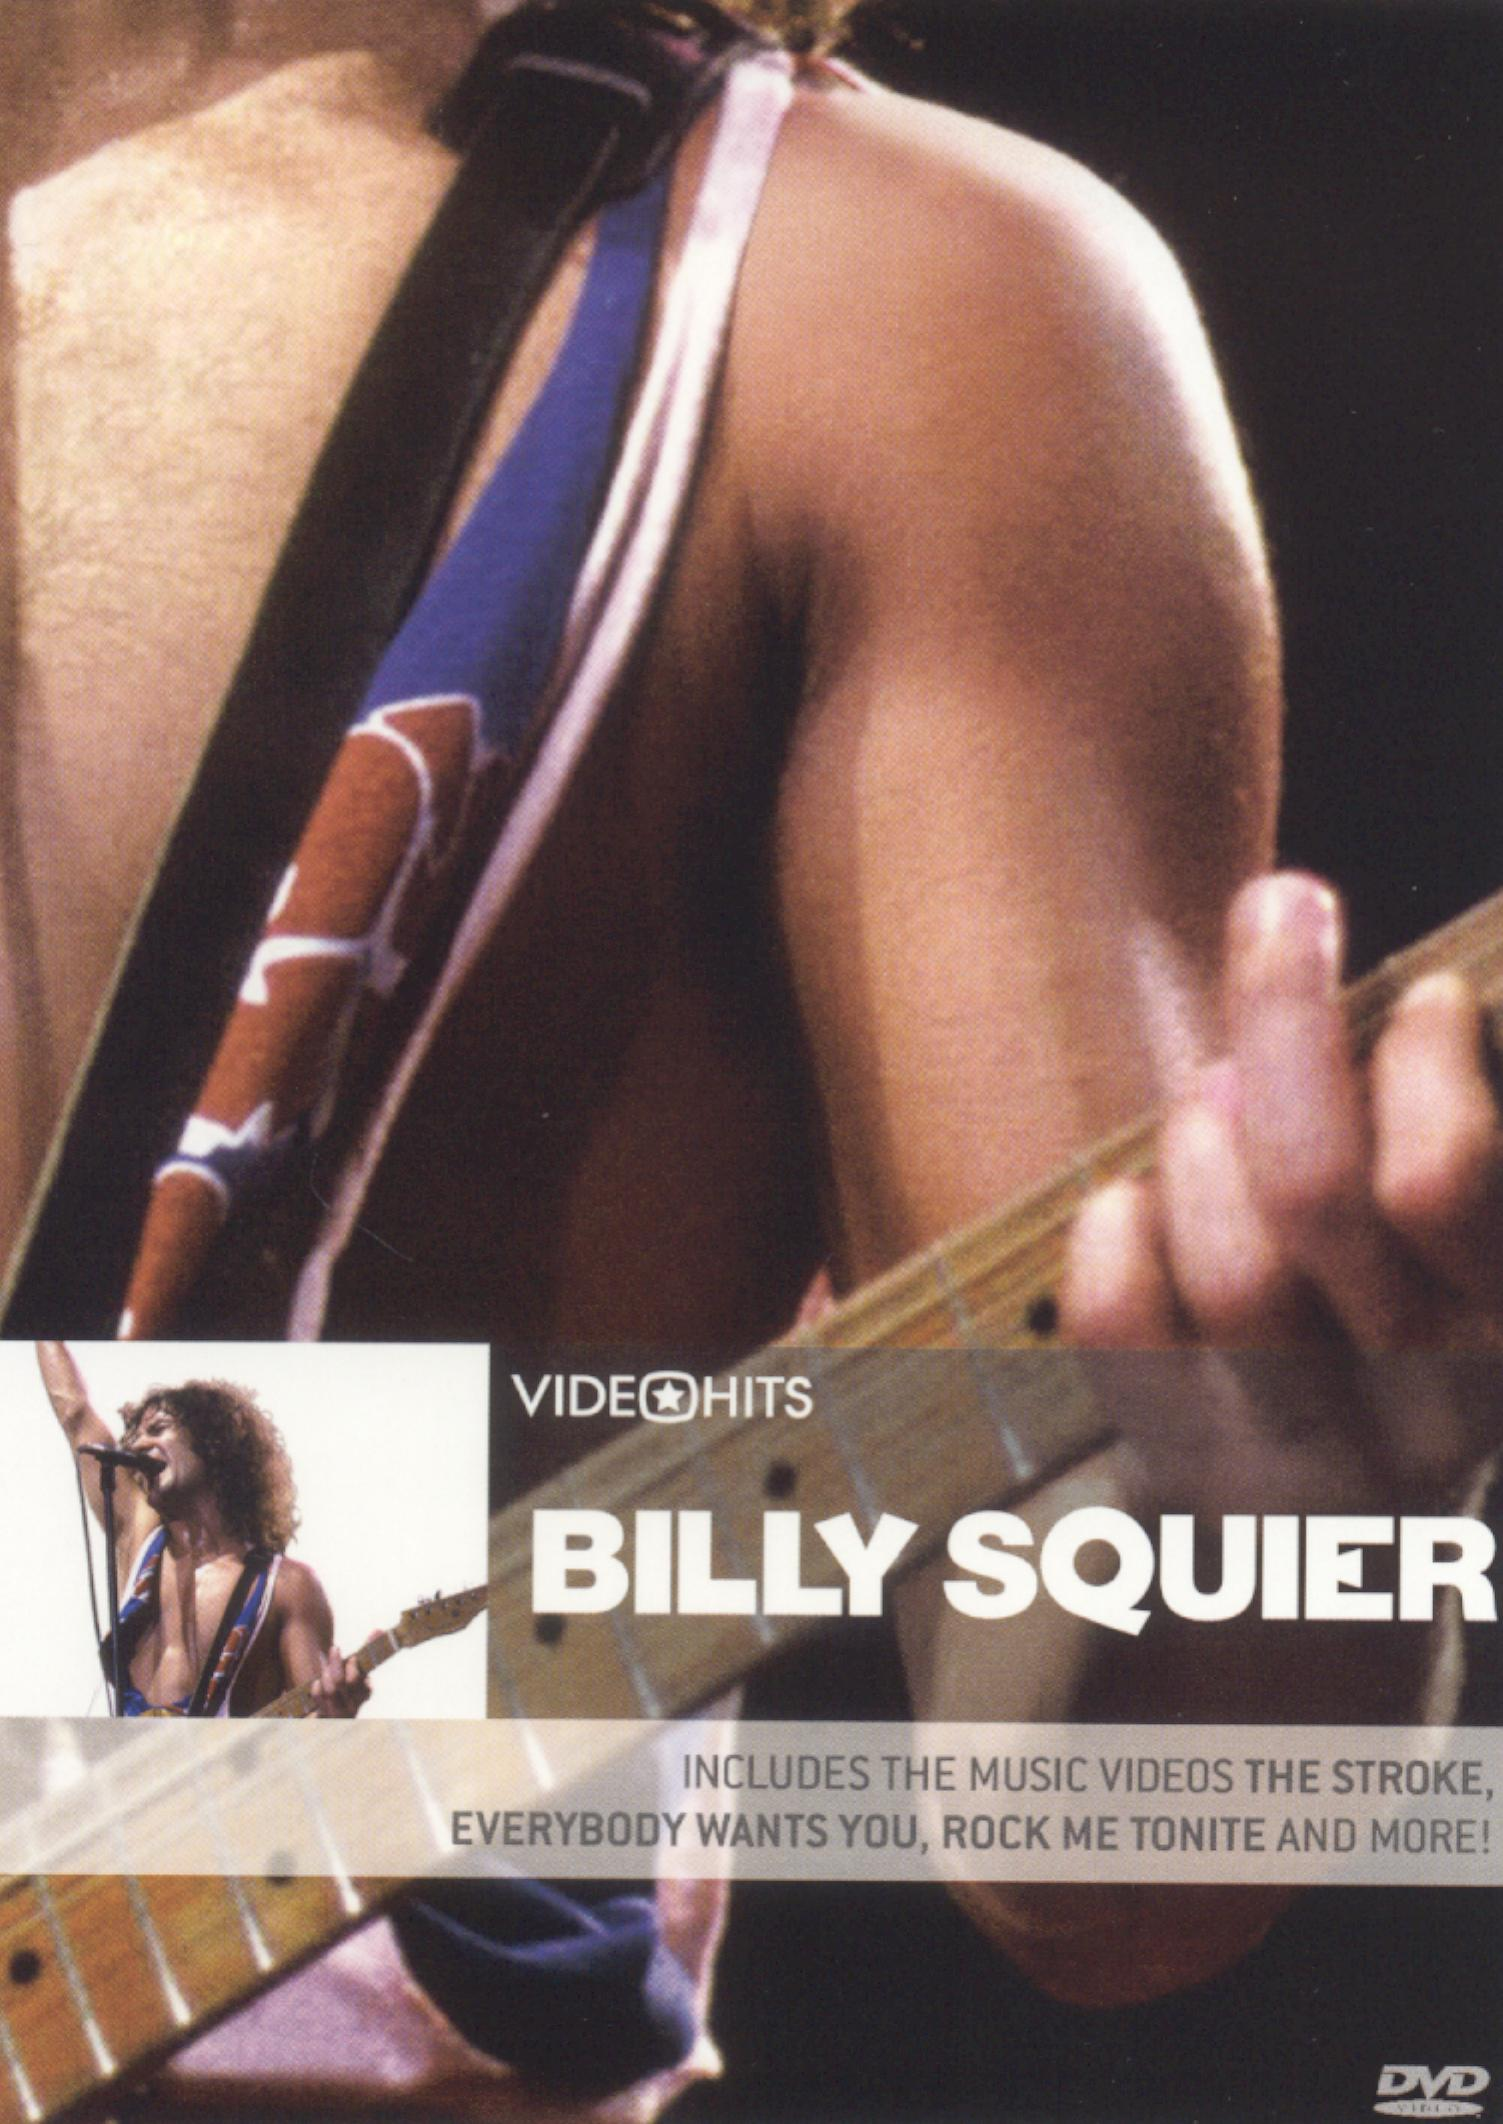 Video Hits: Billy Squier